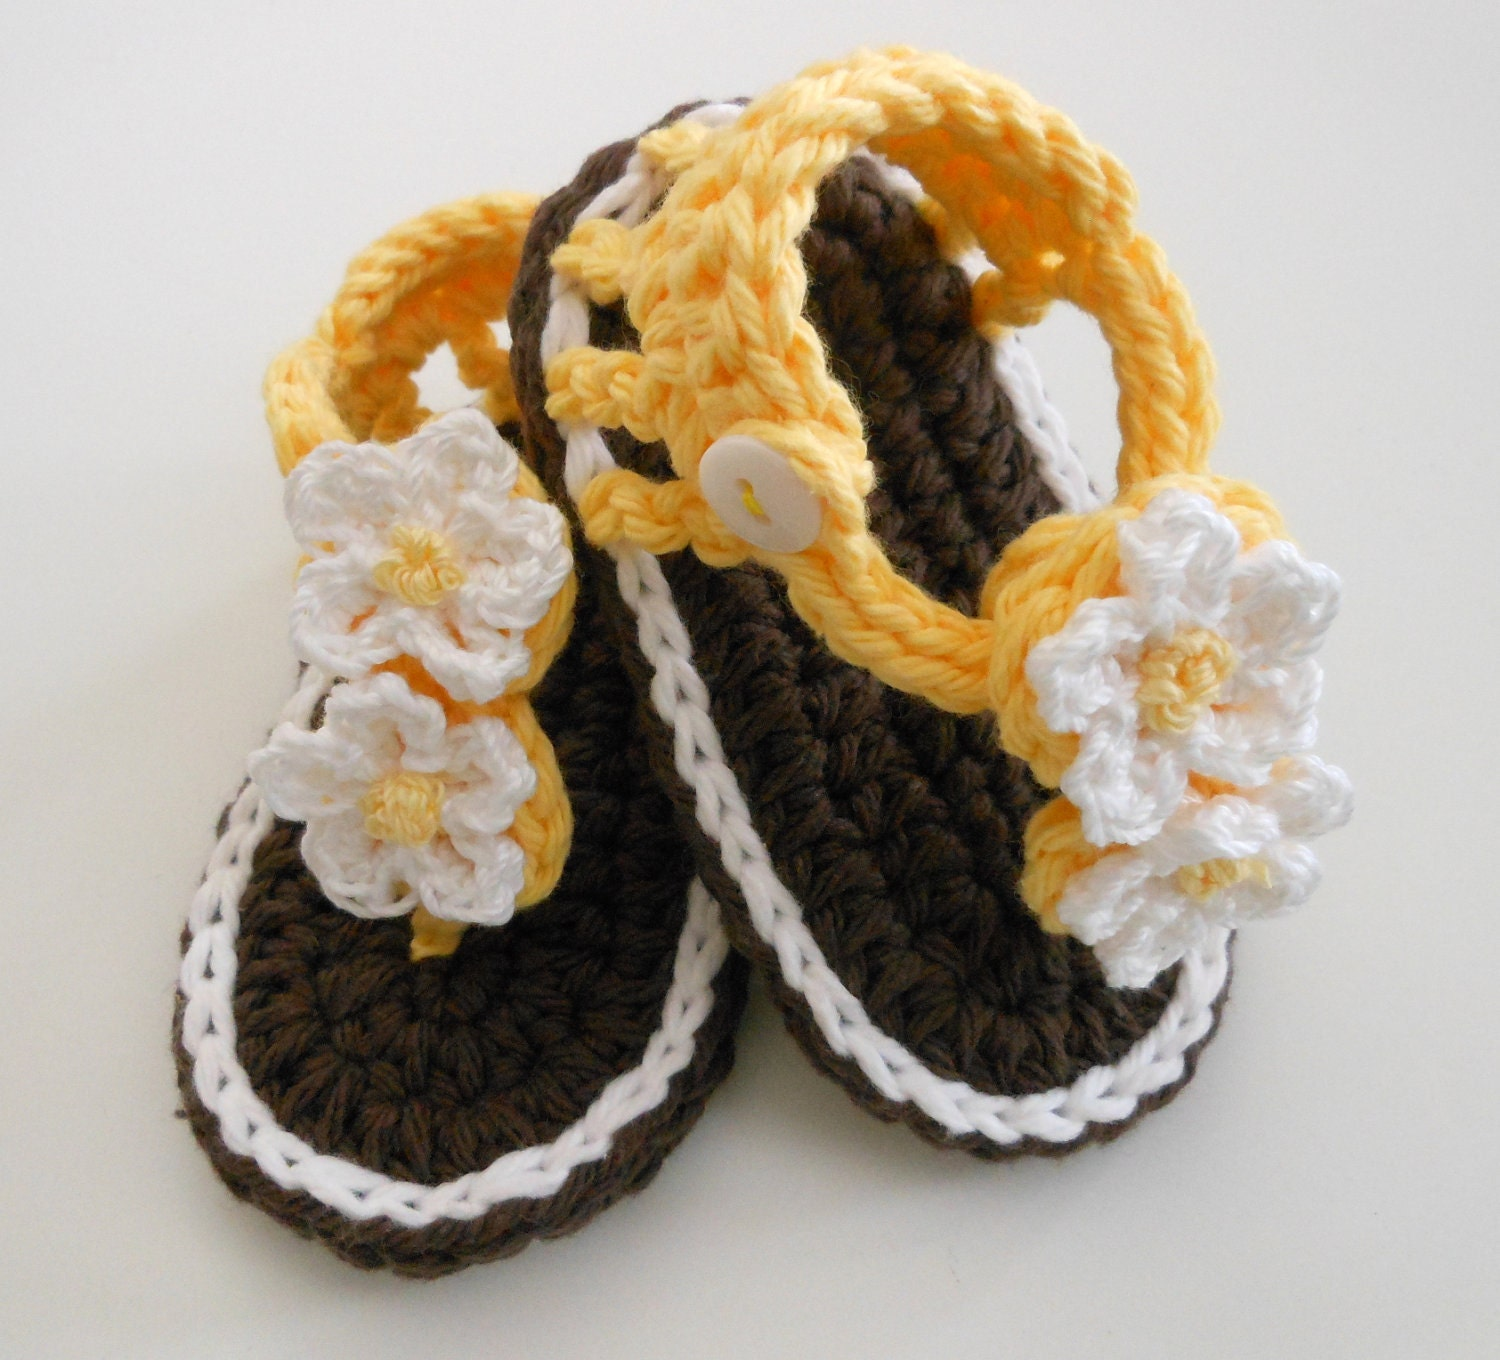 Crochet Bootie Sandals-Crochet Baby Sandals-Crochet Booties-Brown, Yellow,  White - Daisy Flowers & Button Strap -0-6 months-Photo Prop